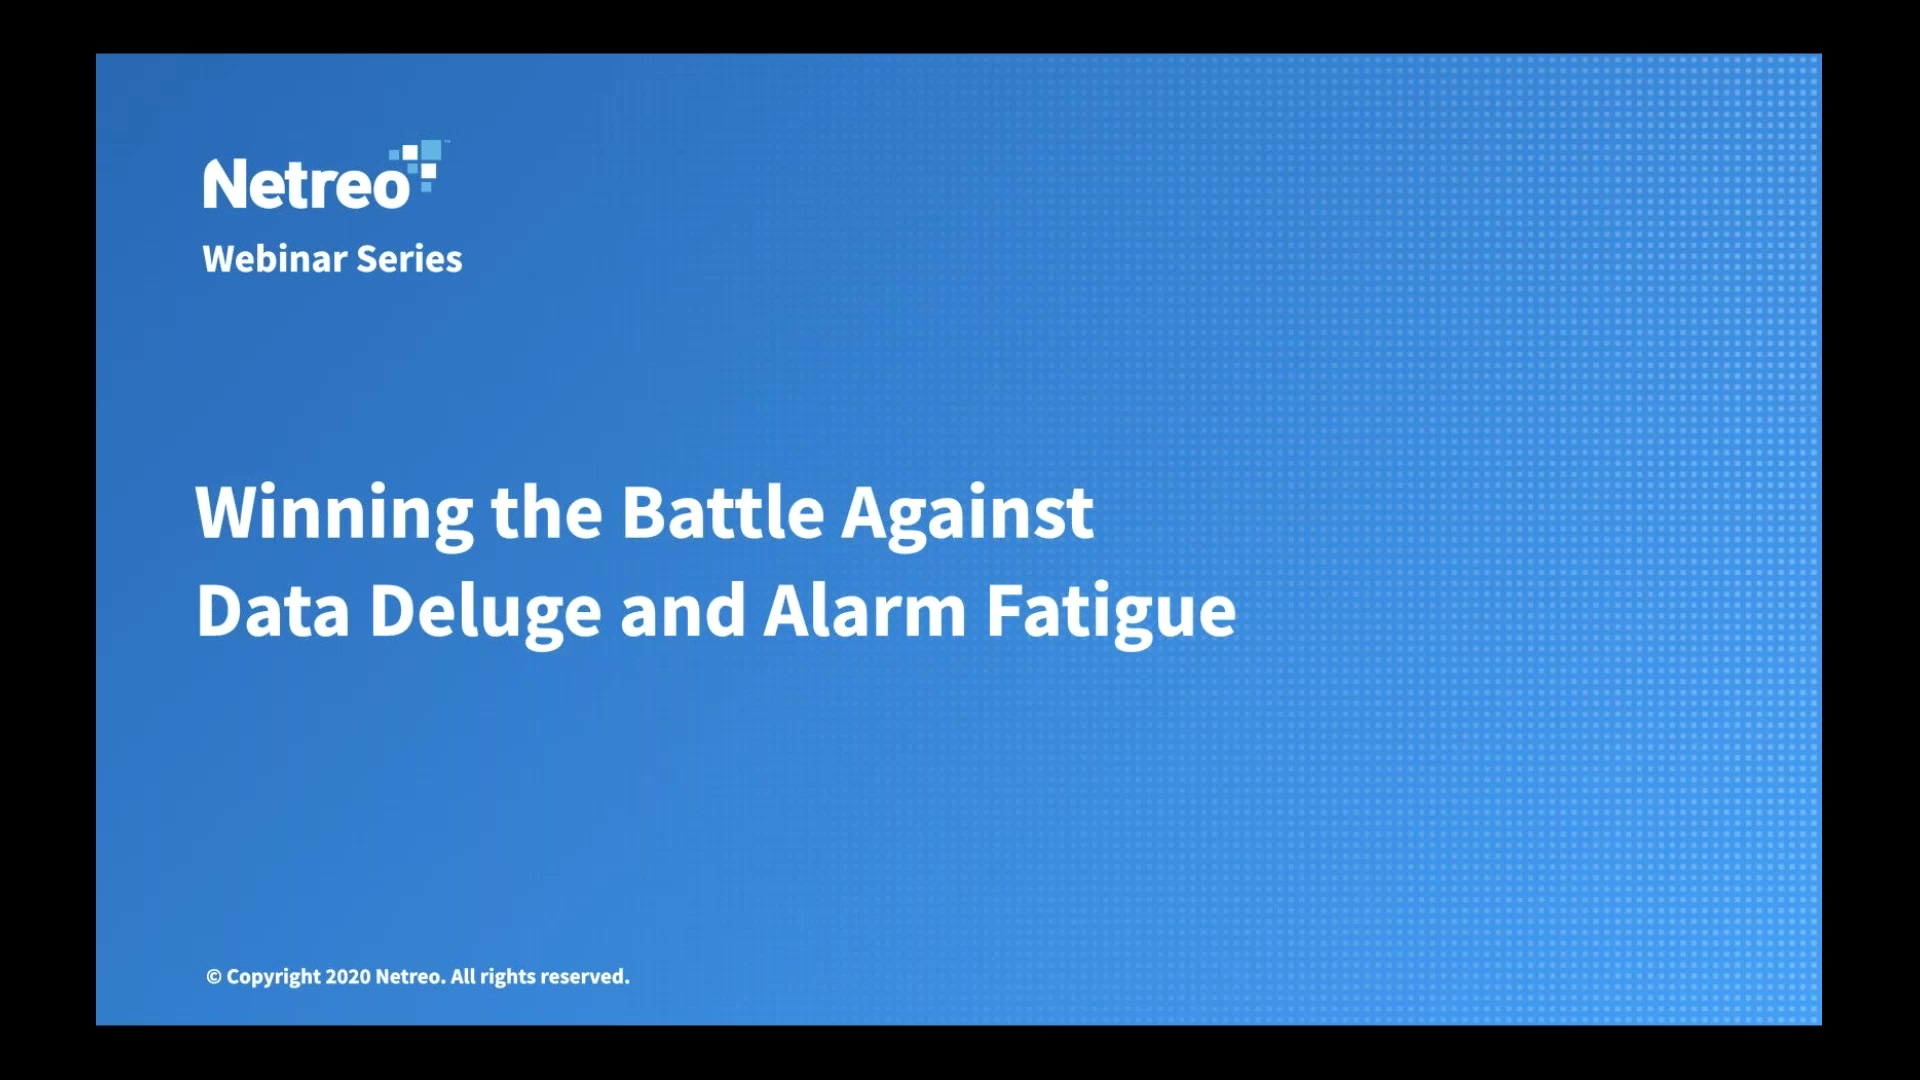 Winning the Battle Against Data Deluge and Alarm Fatigue